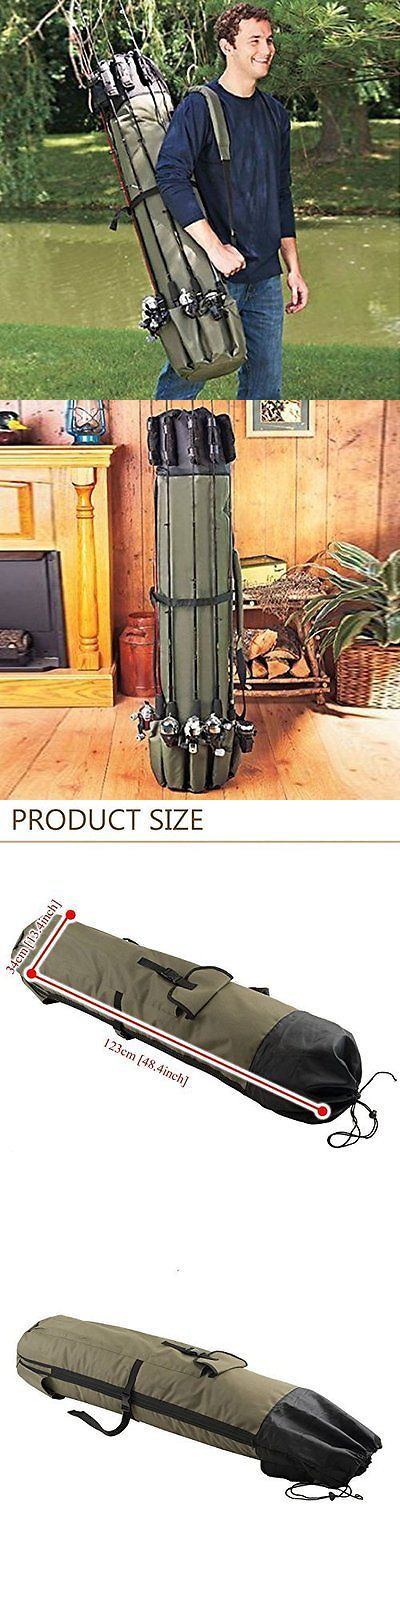 Rod Cases Tubes and Racks 81473: Fishing Rod Reel Tackle Case Bag Organizer Carrier Holder Pole Tools Storage BUY IT NOW ONLY: $35.31